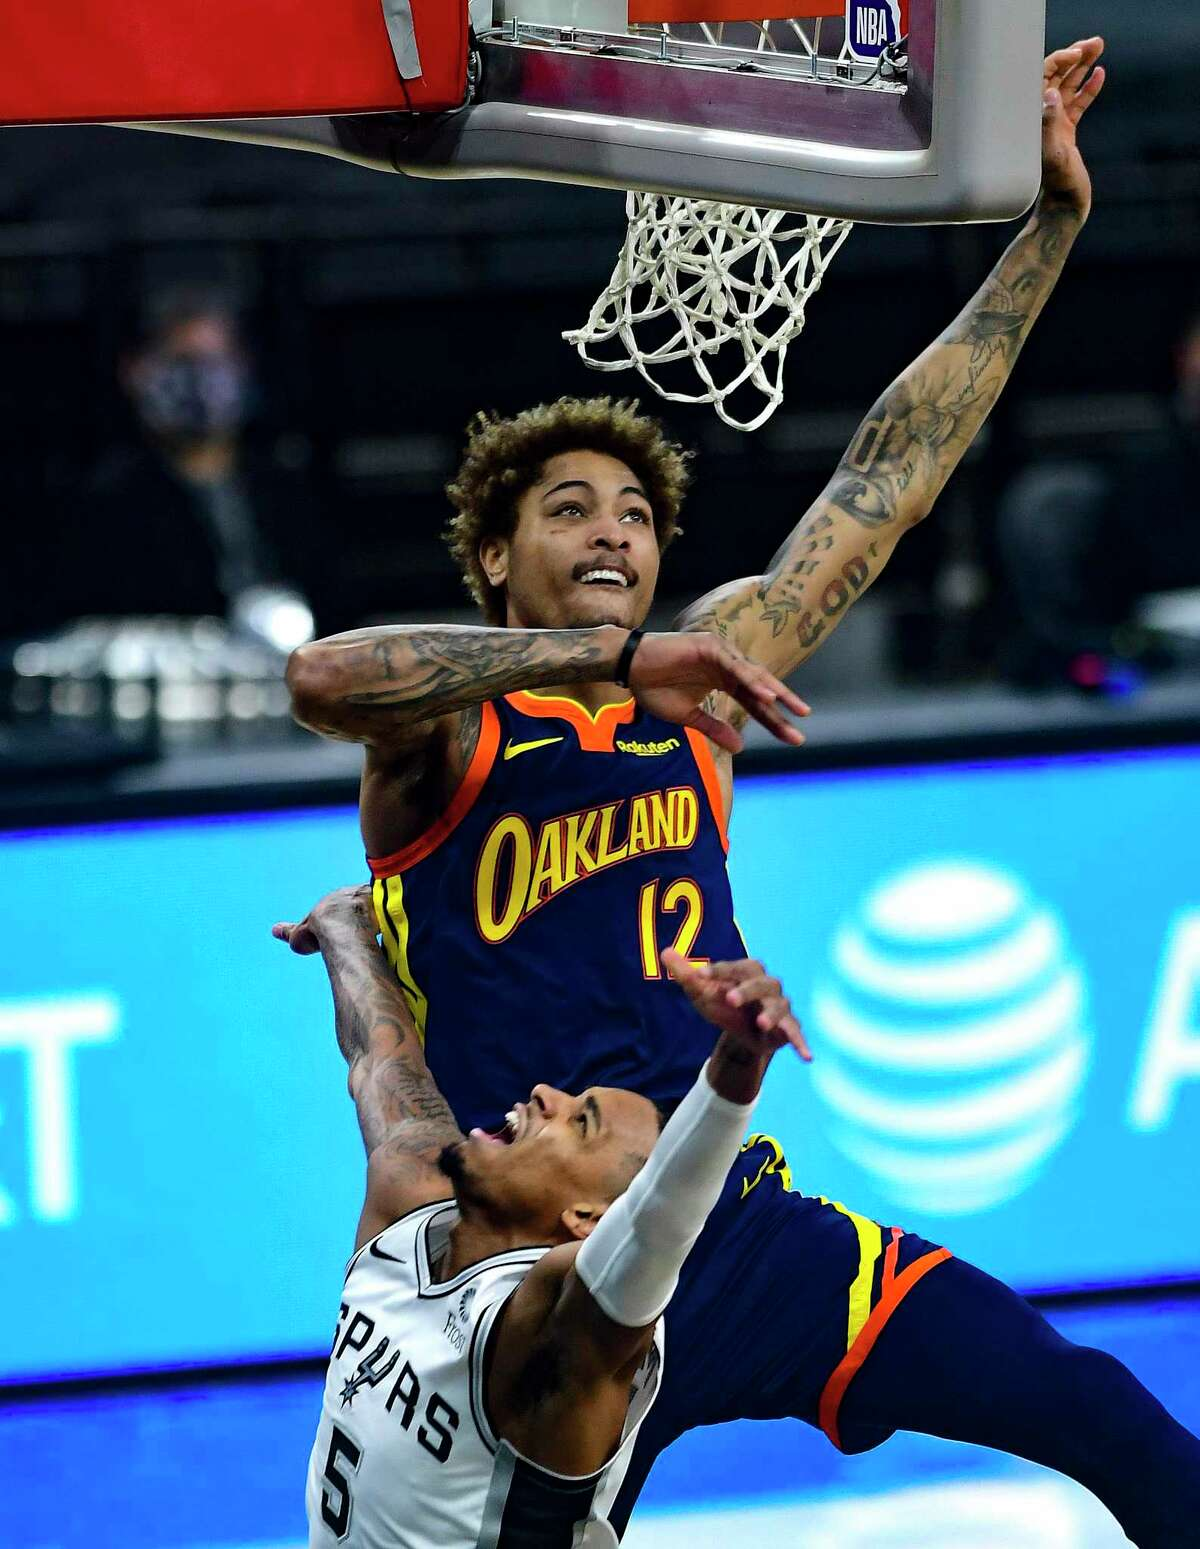 Dejounte Murray of the San Antonio Spurs has his layup foiled by Kelly Oubre (12) of the Golden State Warriors during first-half NBA action in the AT&T Center on Monday, Feb. 8, 2021.